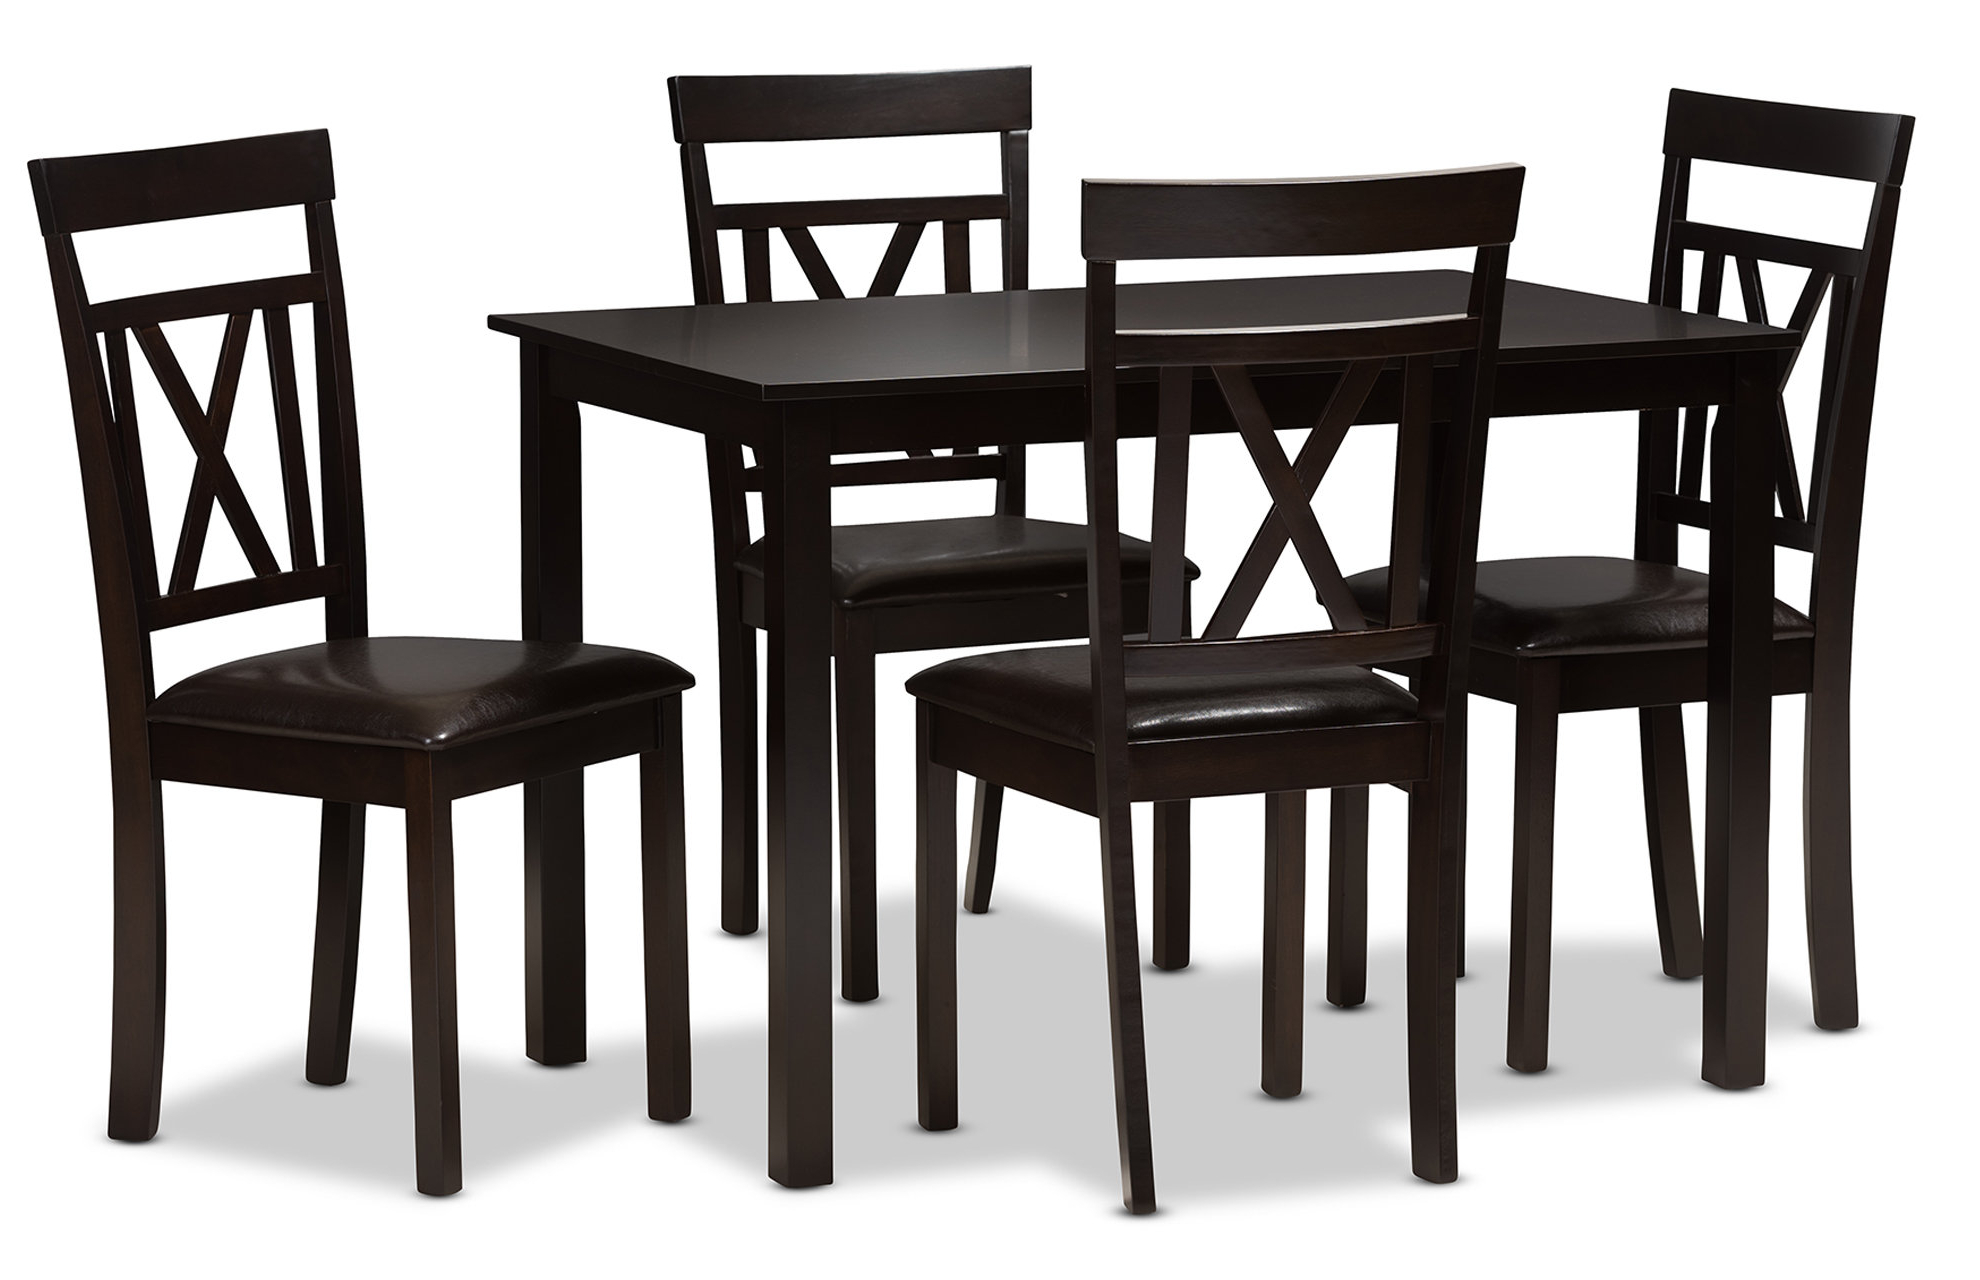 Whitbey Modern And Contemporary 5 Piece Breakfast Nook Dining Set Pertaining To Most Recently Released 5 Piece Breakfast Nook Dining Sets (View 3 of 20)